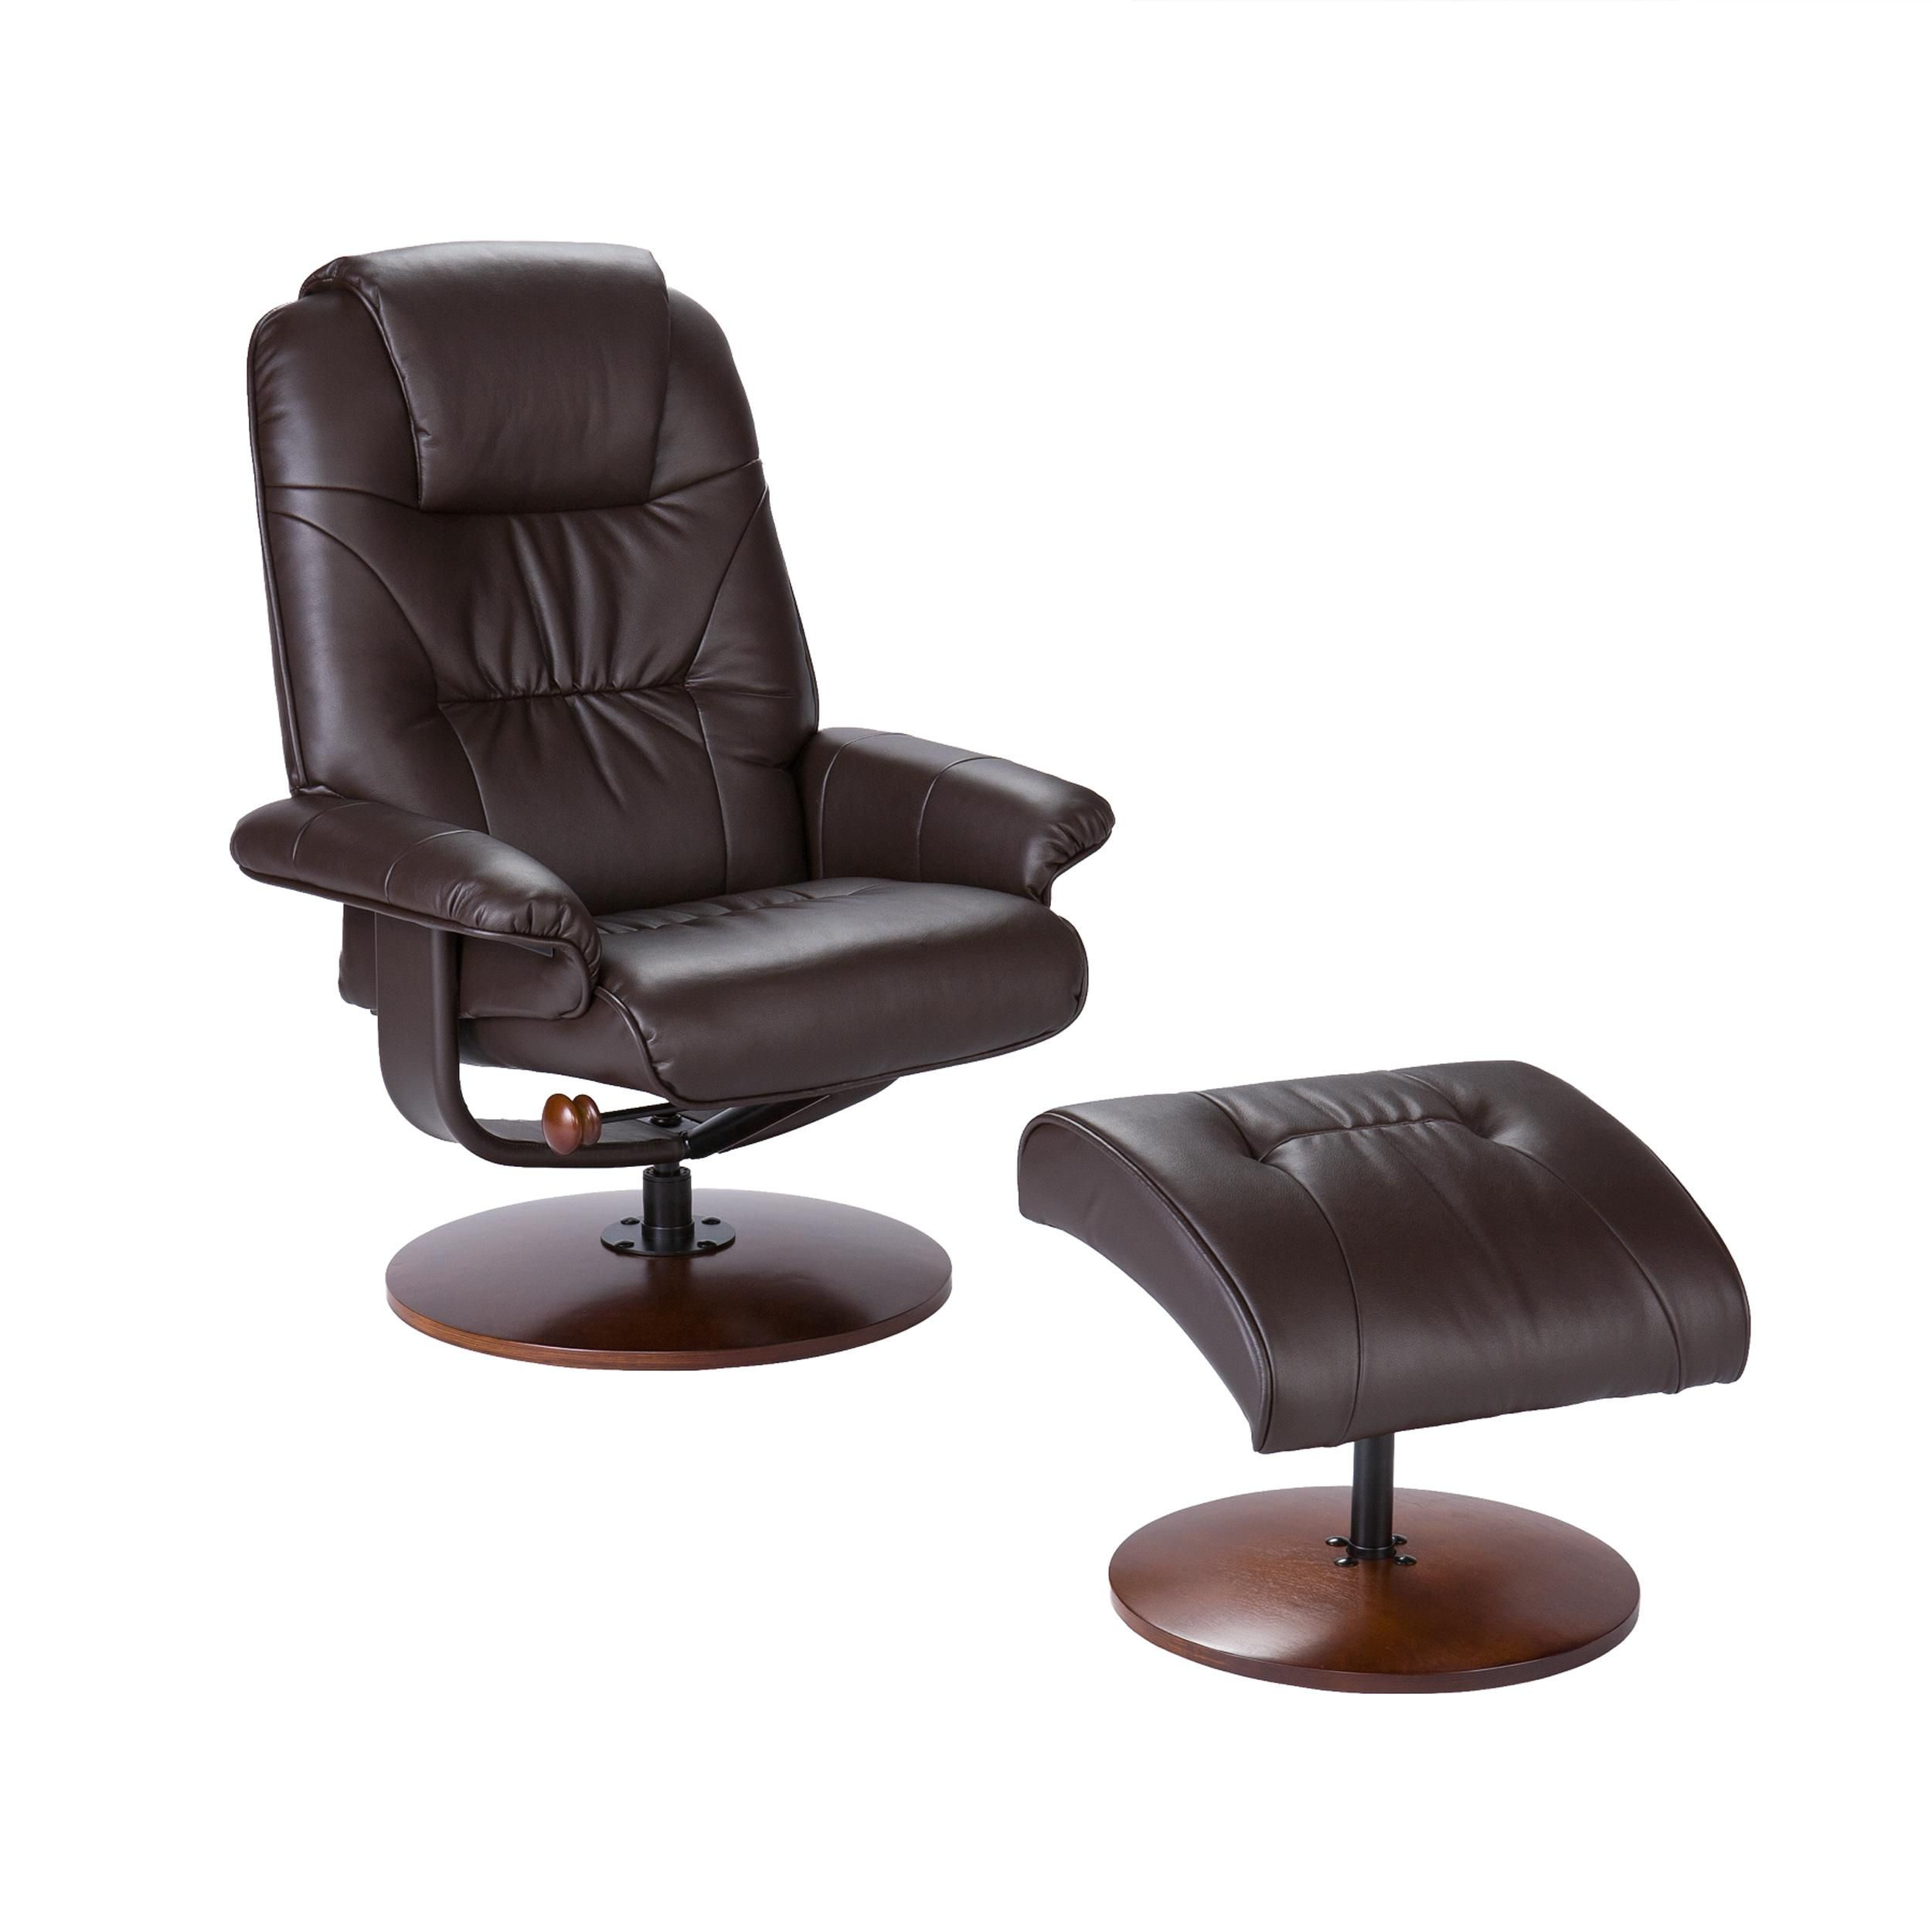 Amazoncom Bonded Leather Recliner and Ottoman